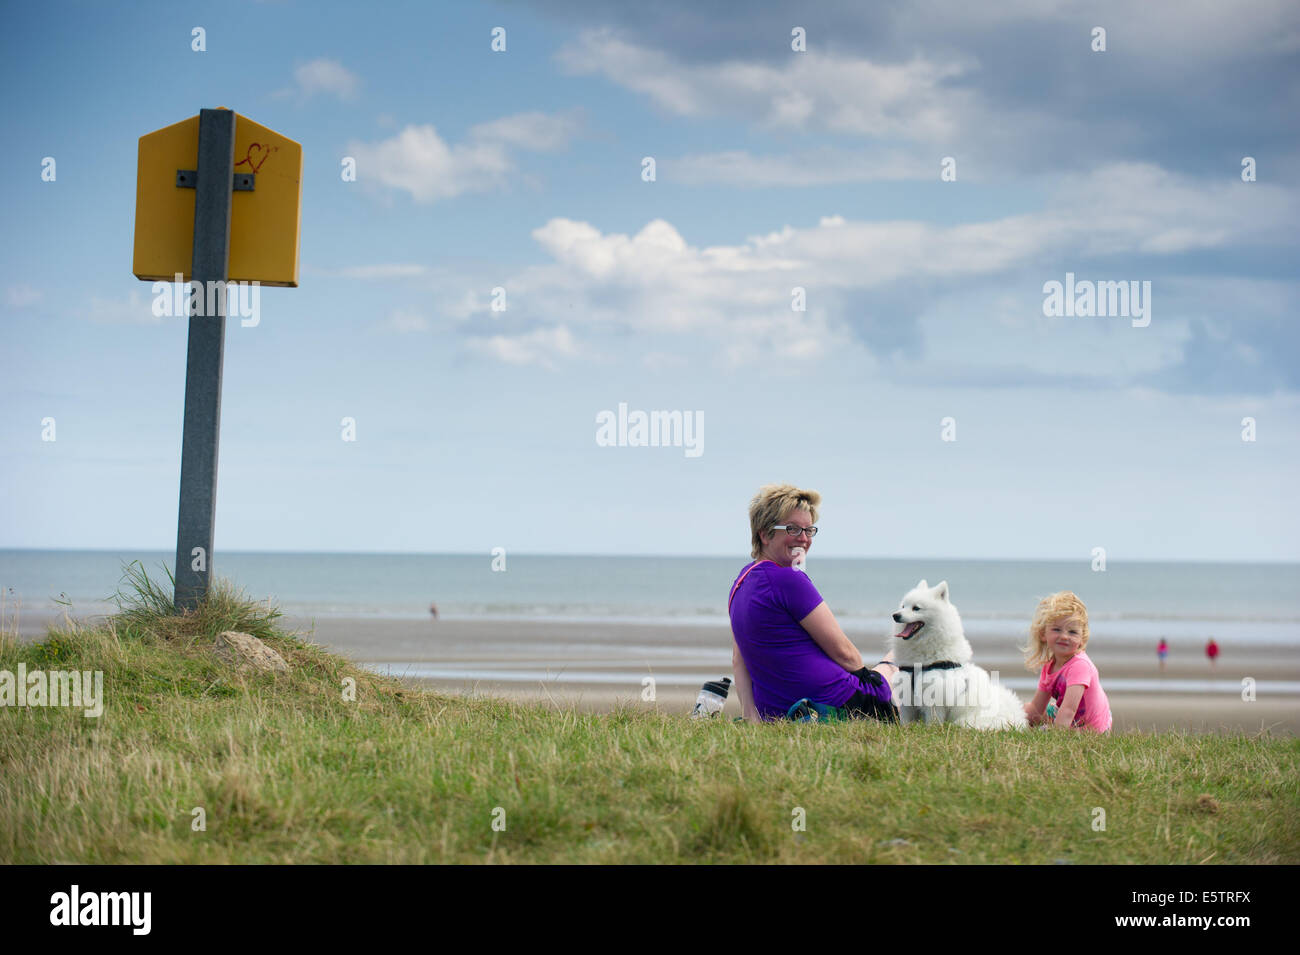 Port beach, County Louth, Ireland. 6th August, 2014. Karen Winters from Clogherhead, County Louth with her daughter - Stock Image